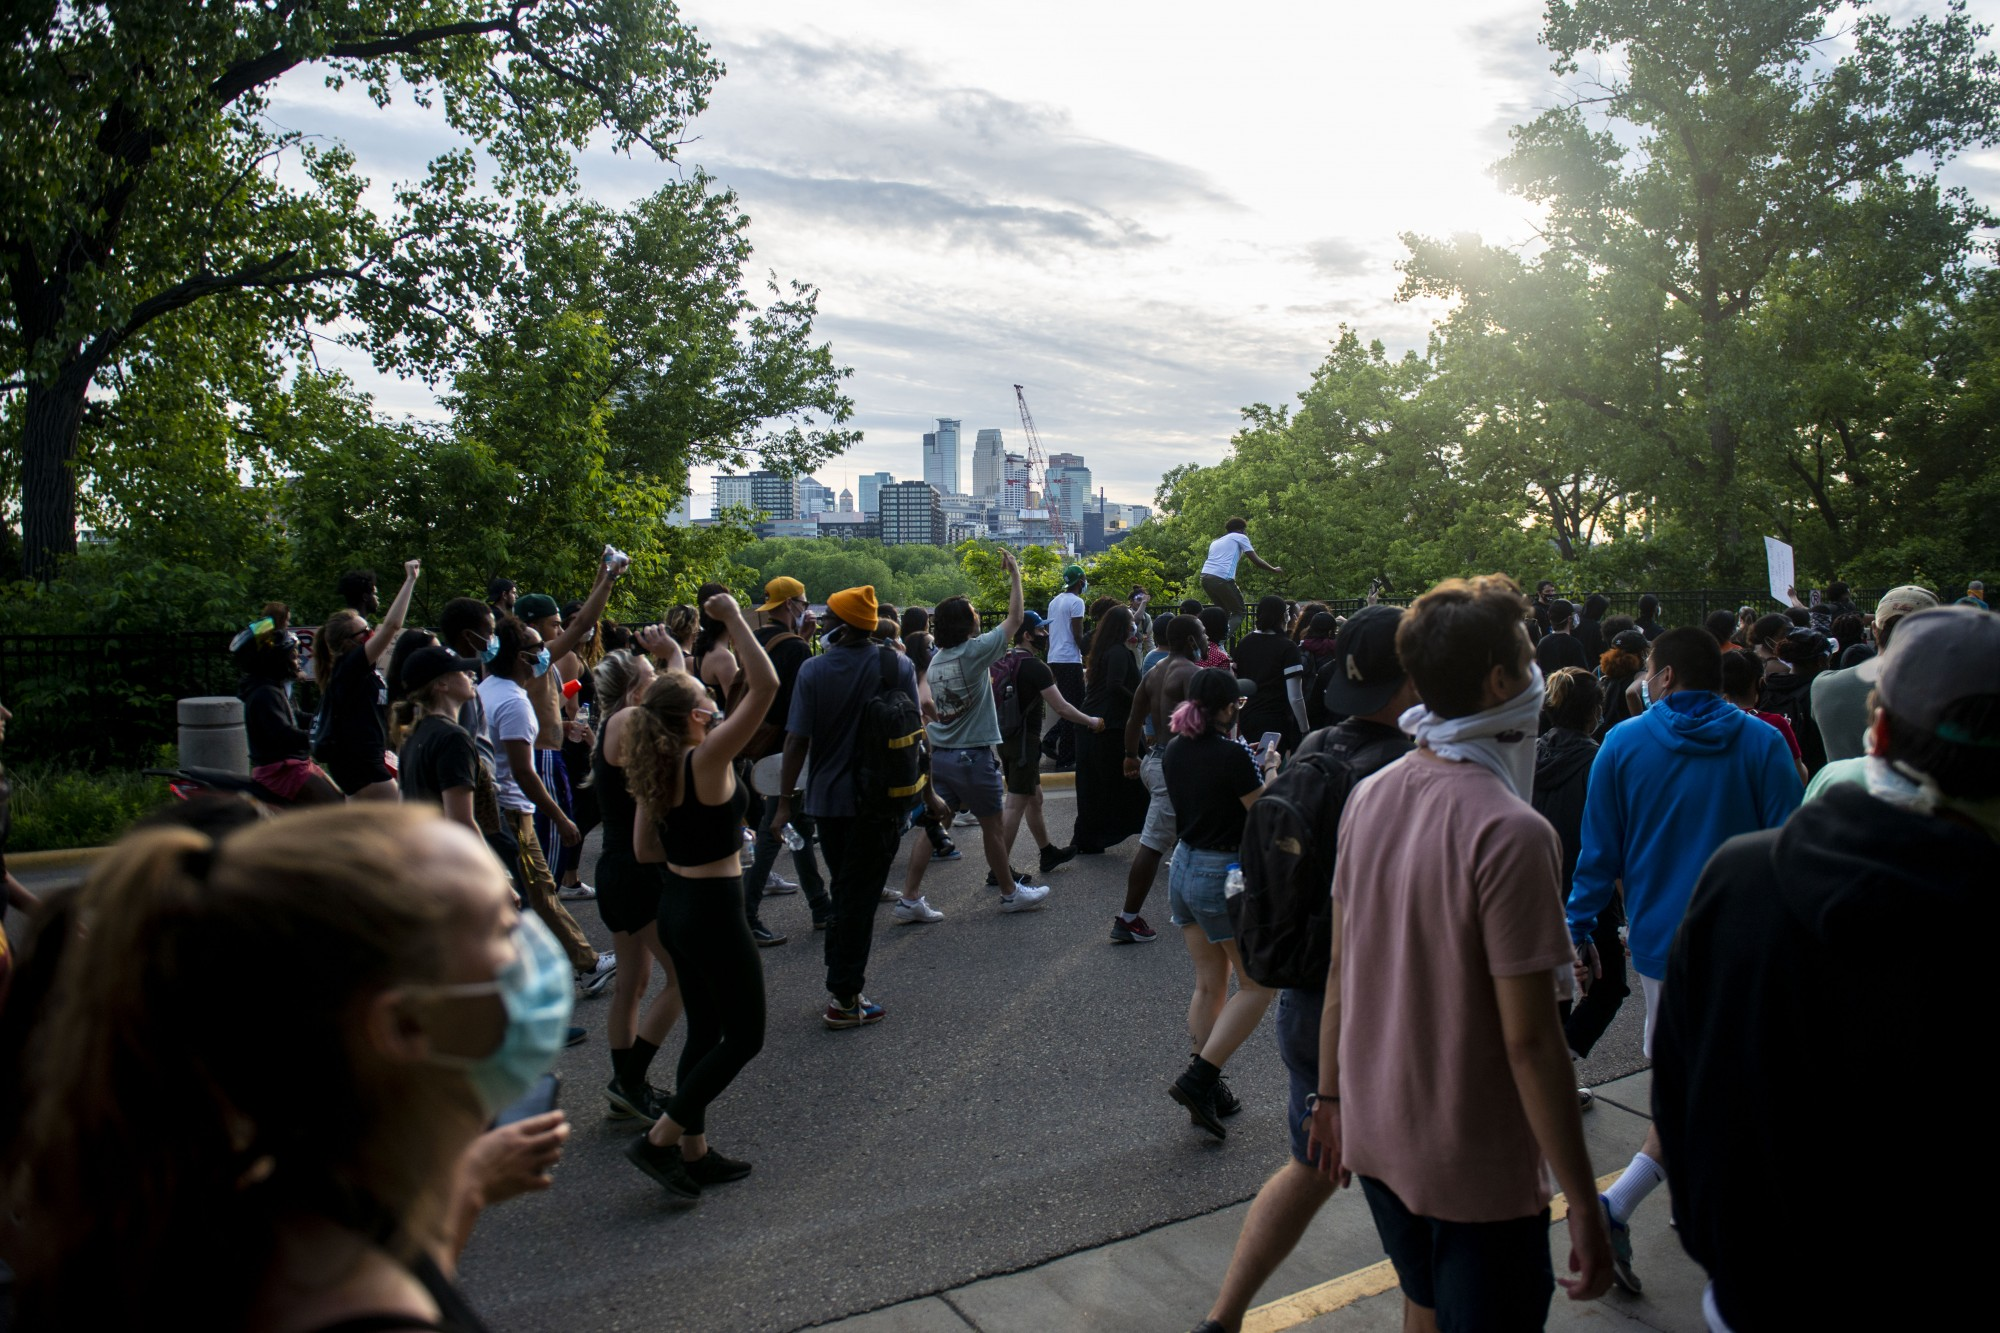 Demonstrators make their way through parts of campus as curfew nears, eventually crossing the Stone Arch Bridge and into downtown on Sunday, May 31. (Jack Rodgers / Minnesota Daily)